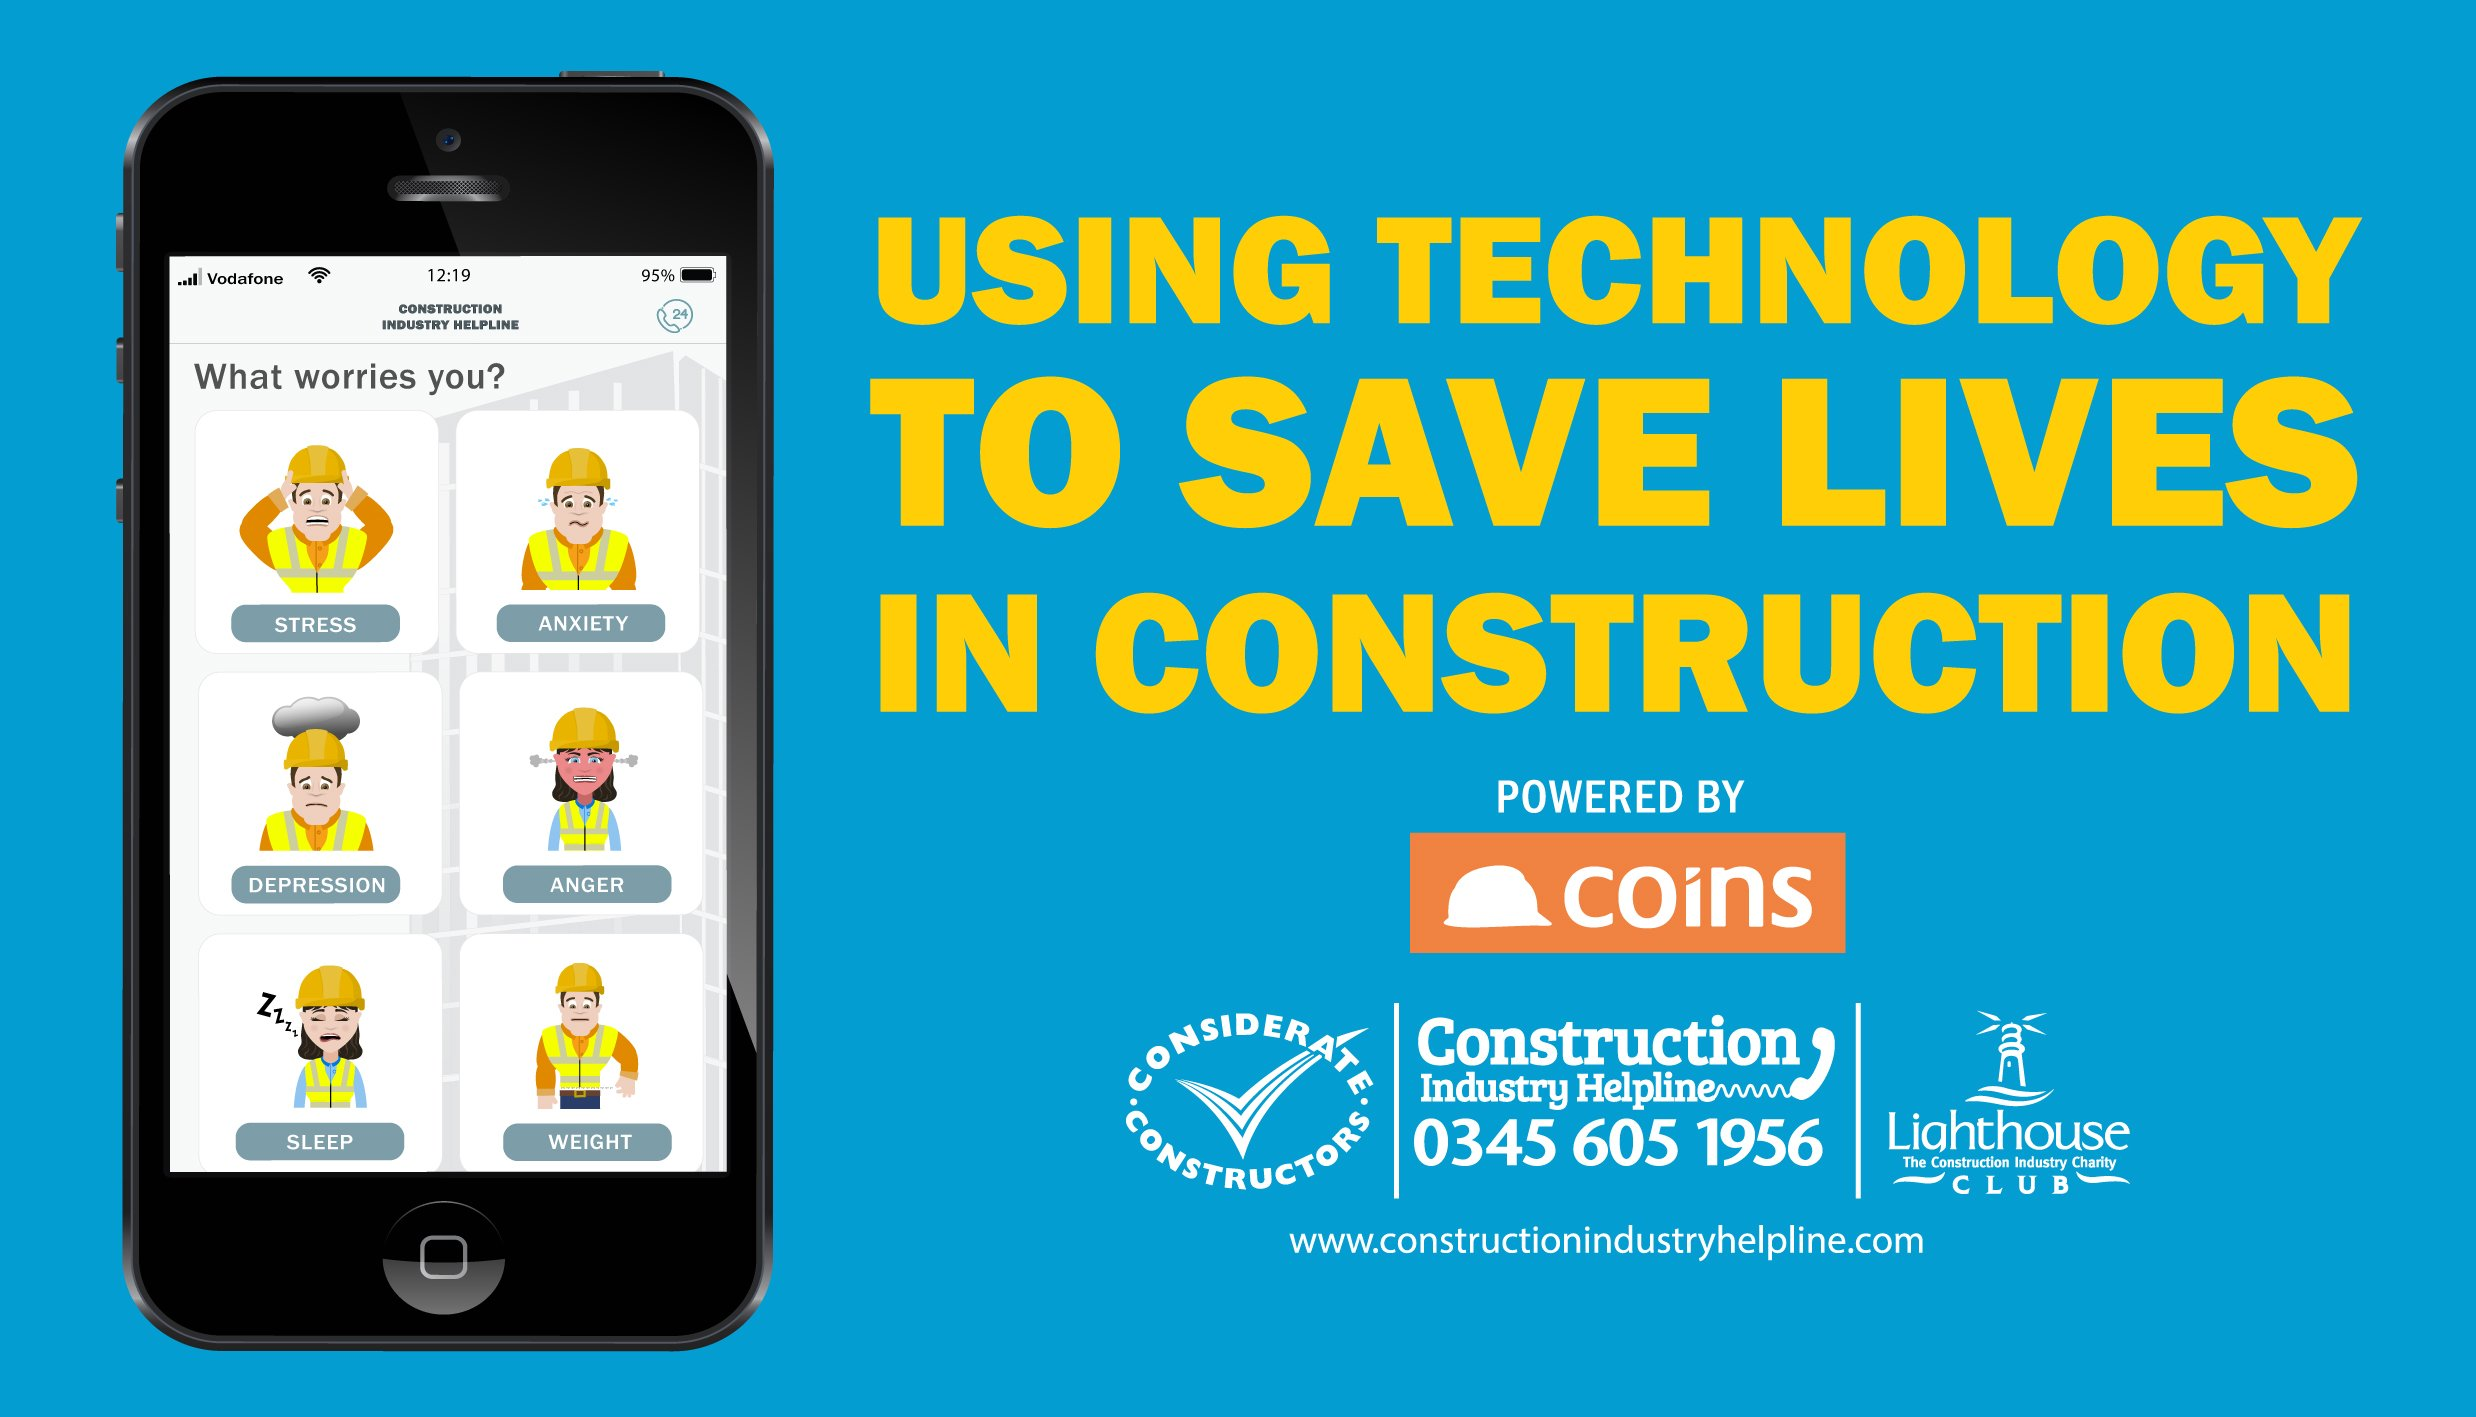 Lighthouse launch App to support construction worker's mental health